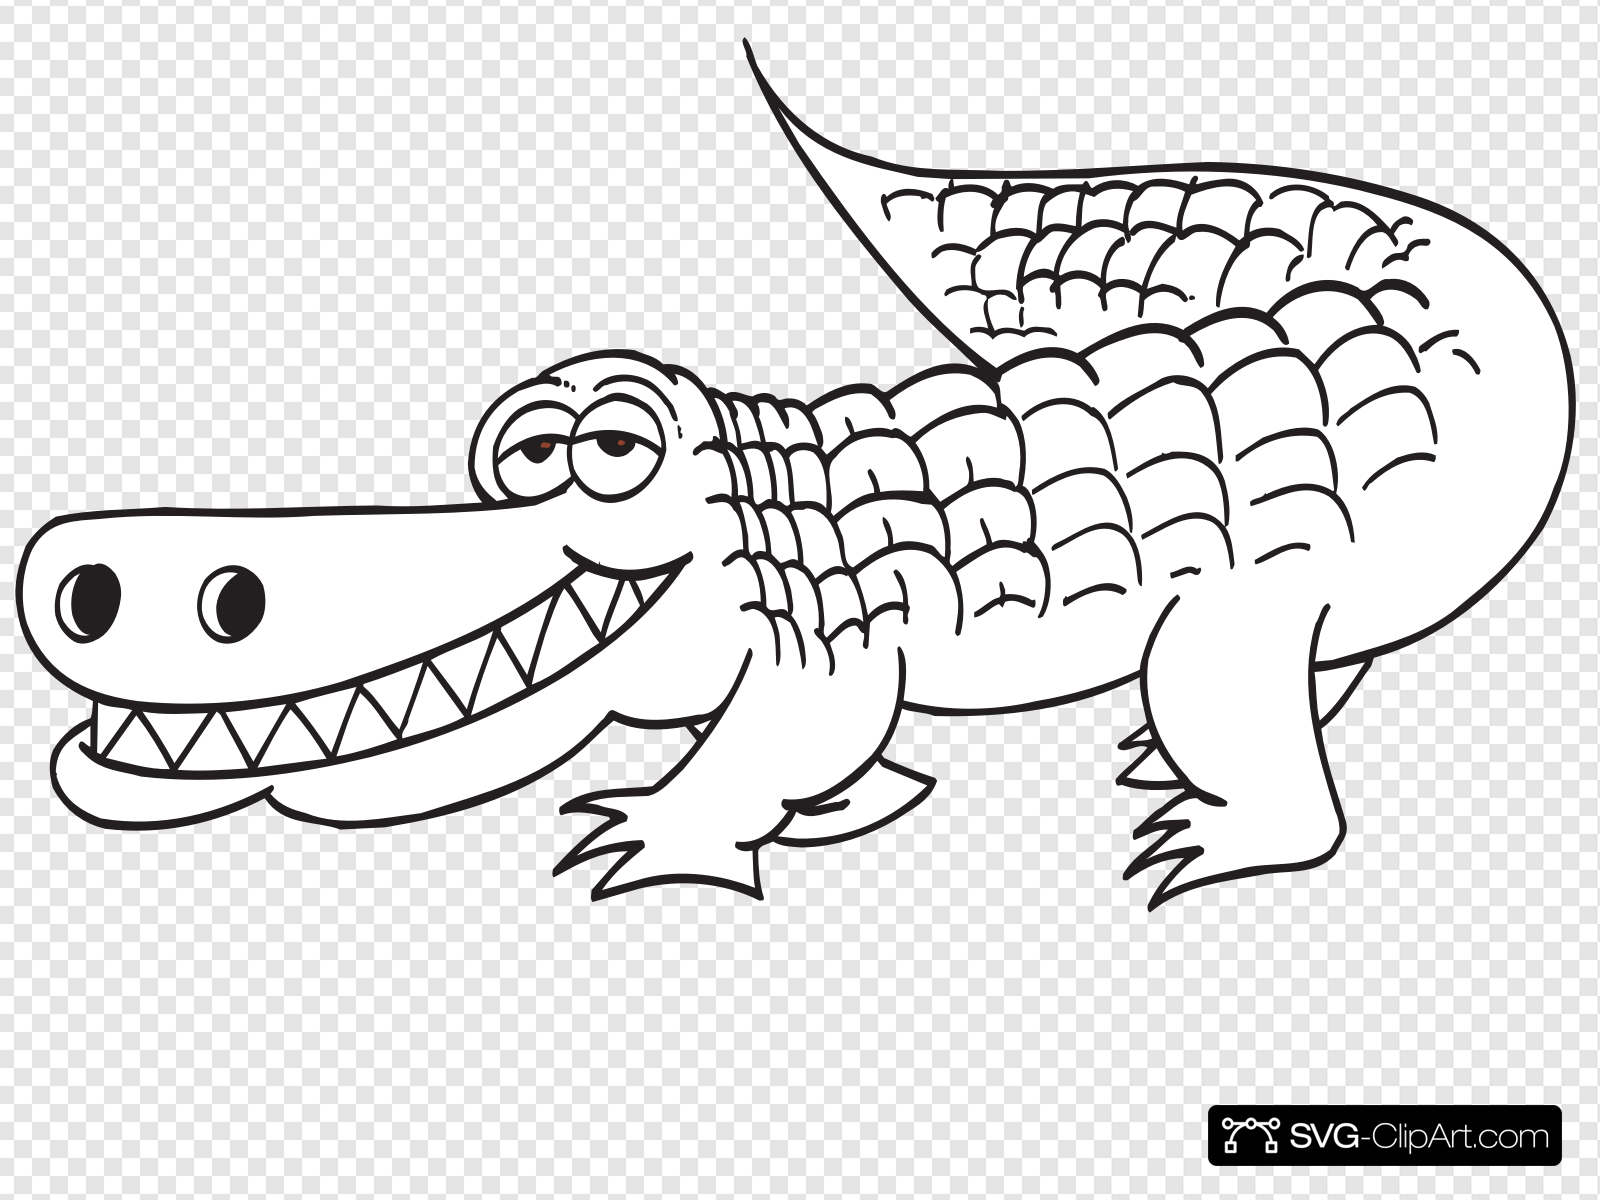 Alligator teeth clipart png library download White Alligator Outline Clip art, Icon and SVG - SVG Clipart png library download